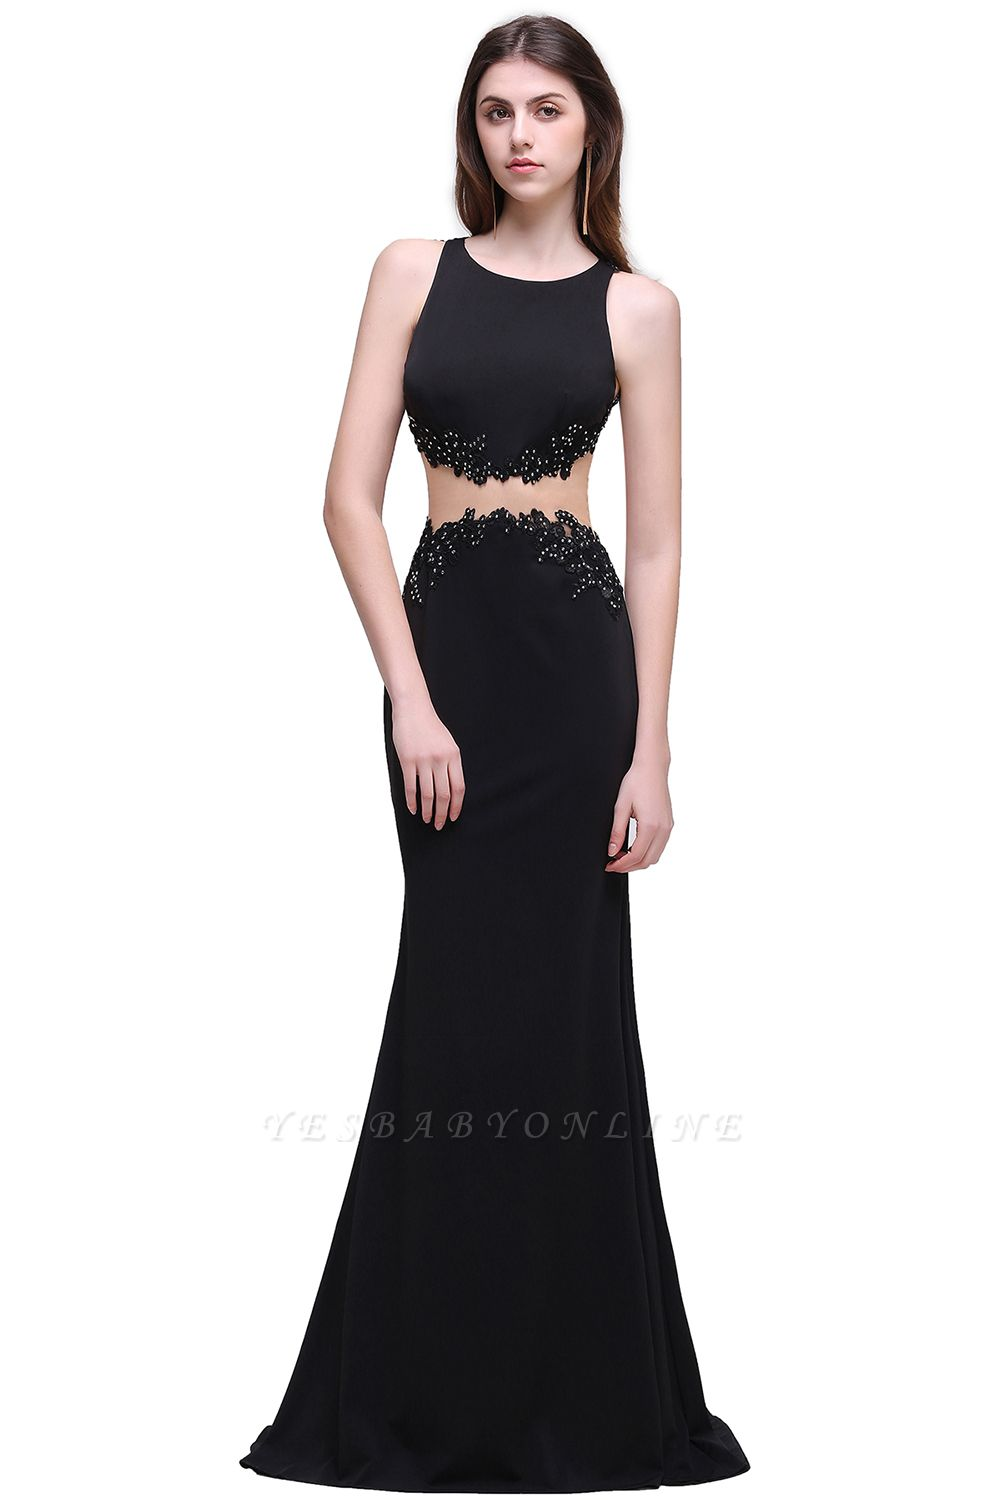 Sheath Round Neck Floor-Length Black Prom Dresses With Crystal